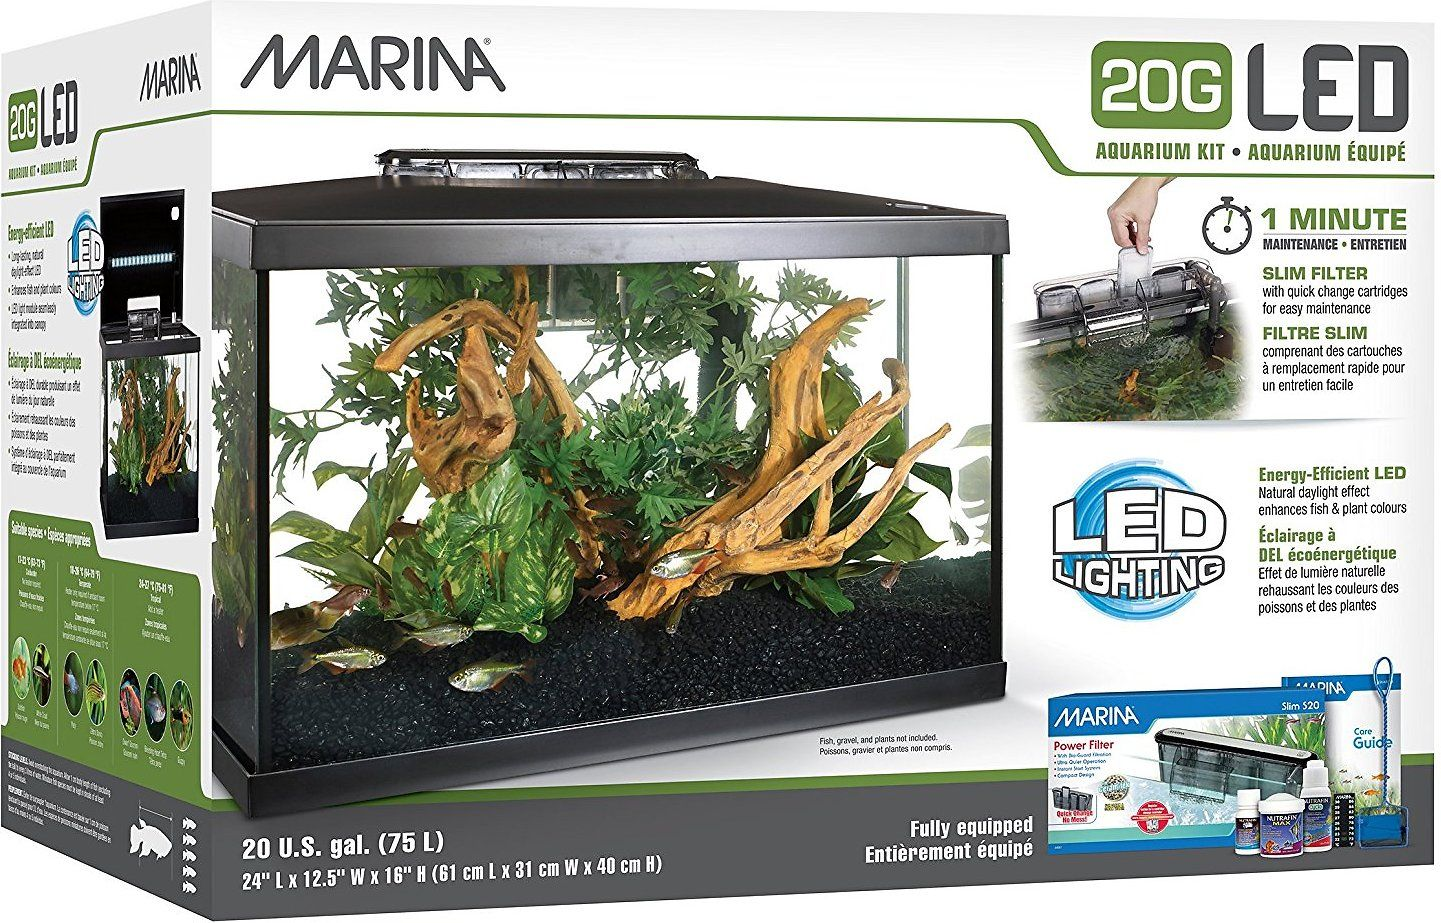 Marina Led Aquarium Kit 20 Gal Chewy Com Aquarium Kit Aquarium 20 Gallon Aquarium